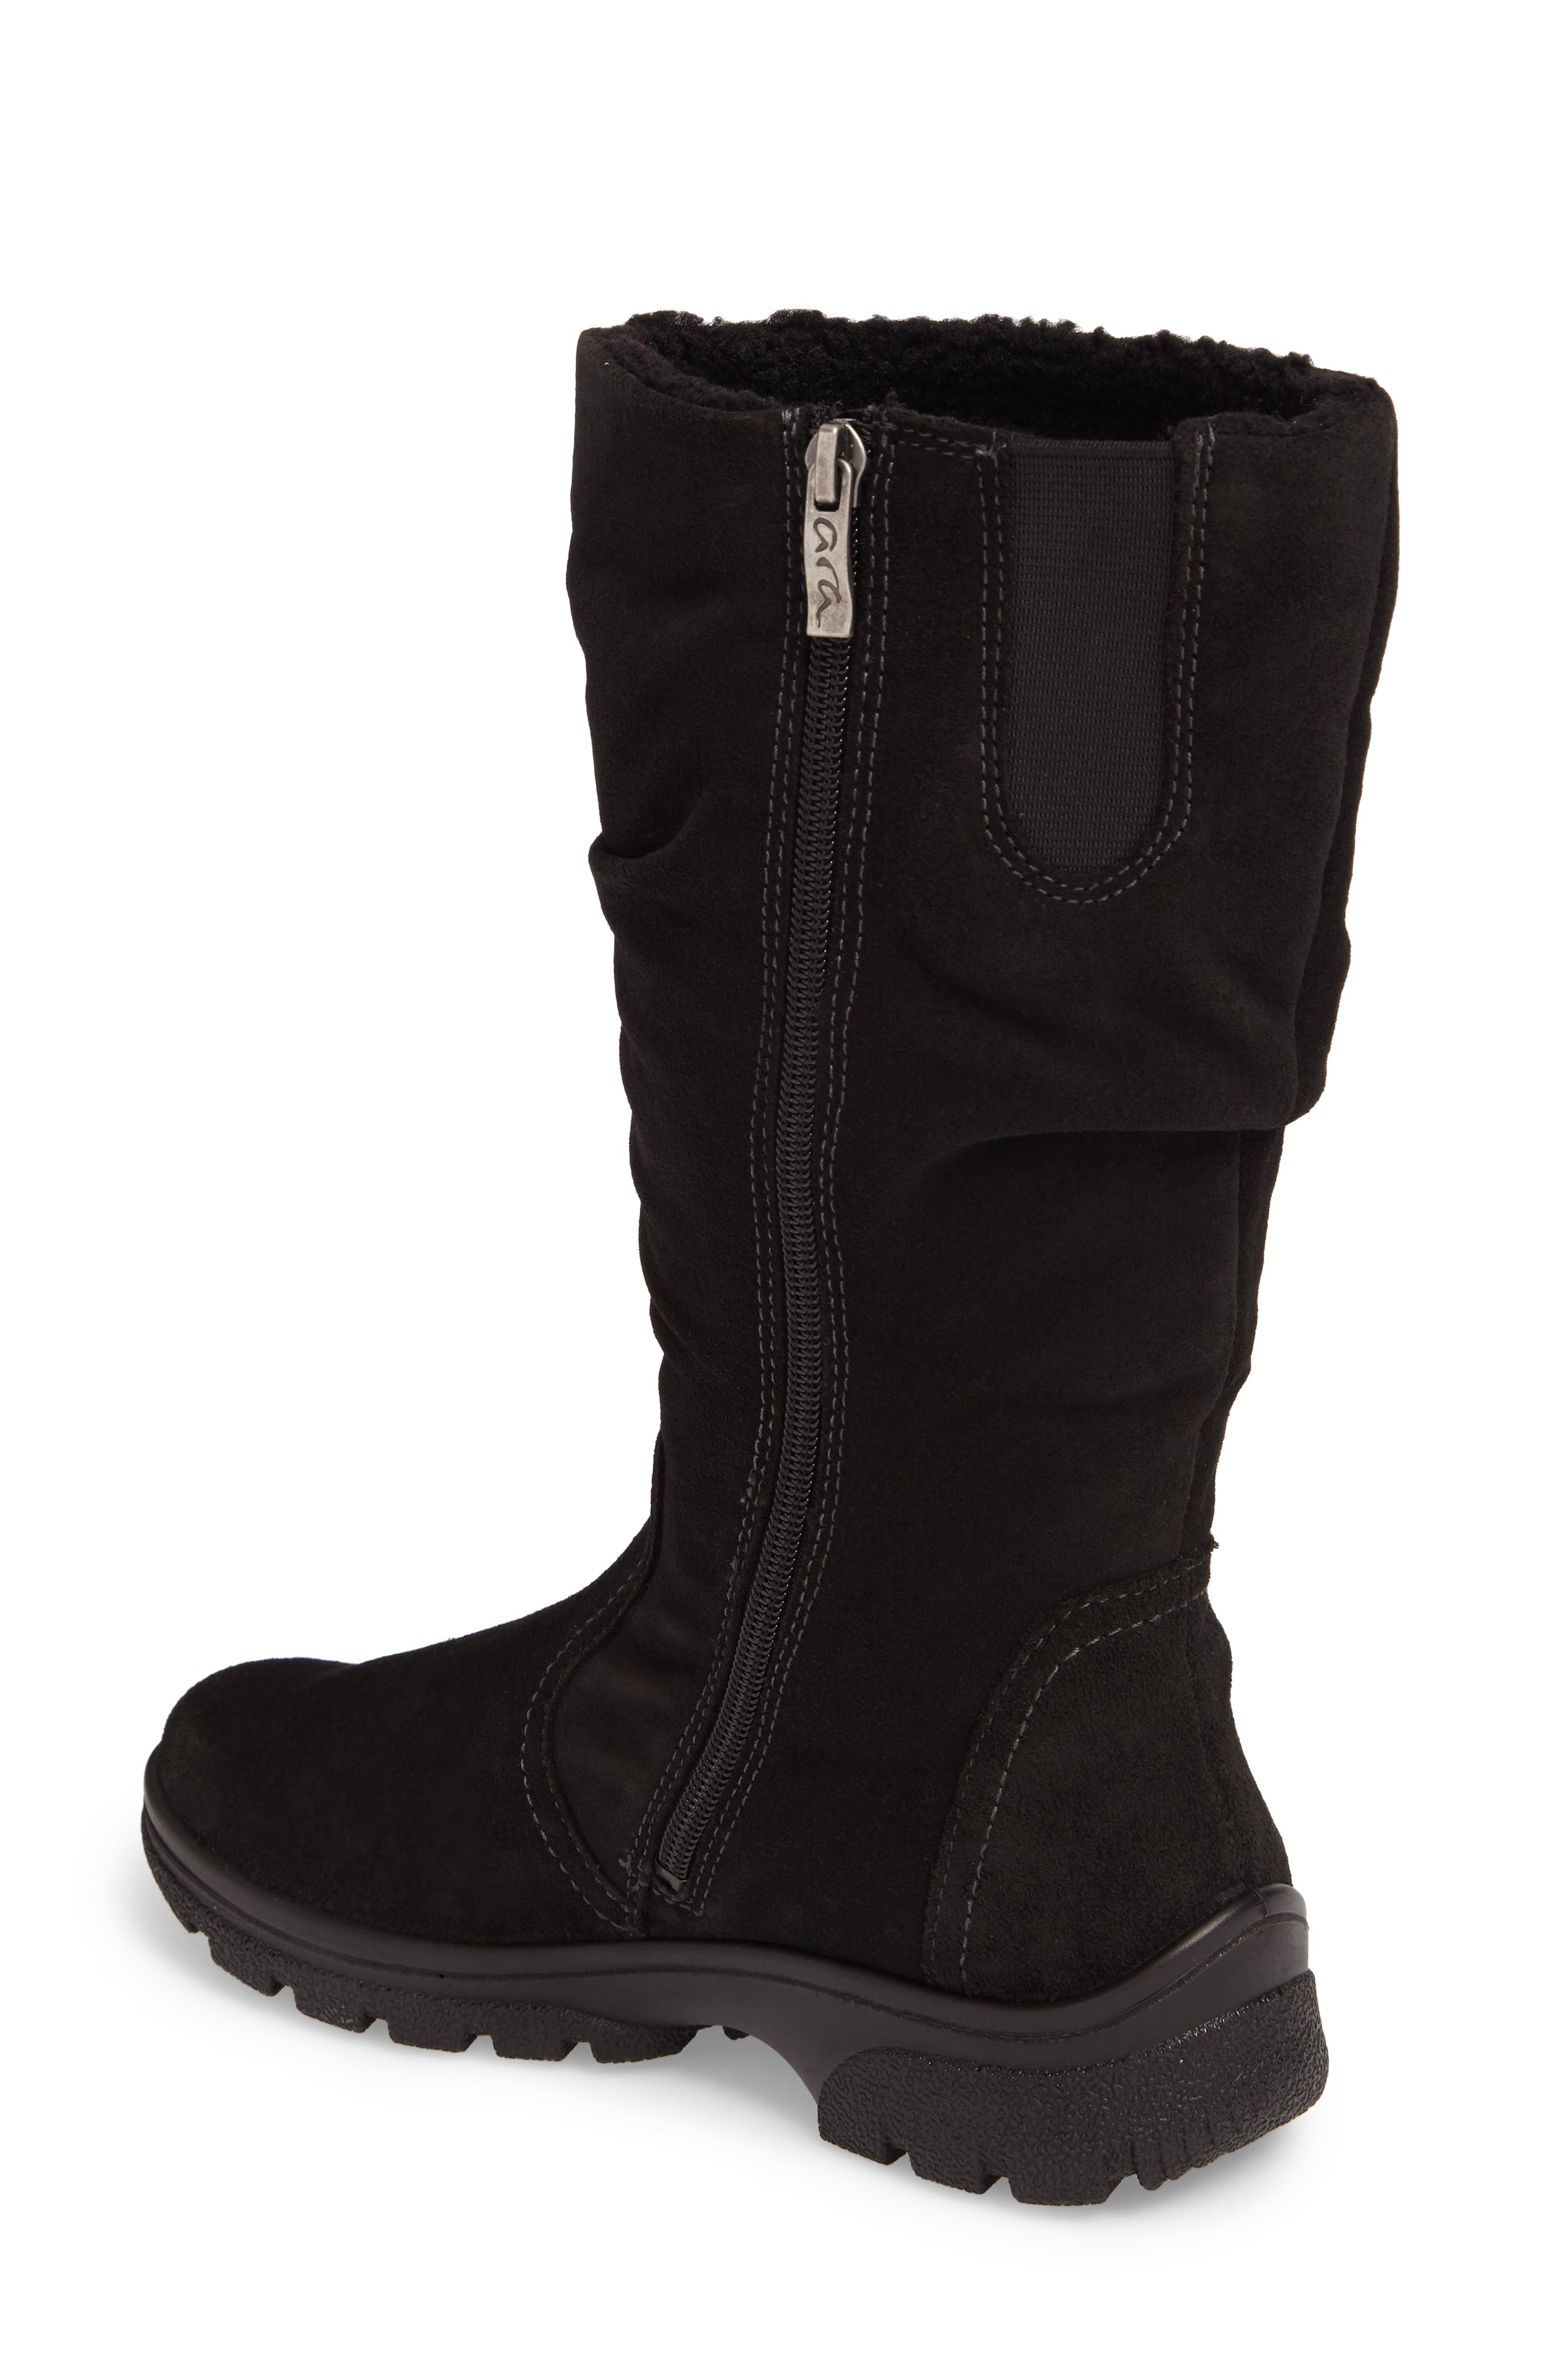 Sydney Waterproof Gore-Tex<sup>®</sup> Boot,                             Alternate thumbnail 2, color,                             001